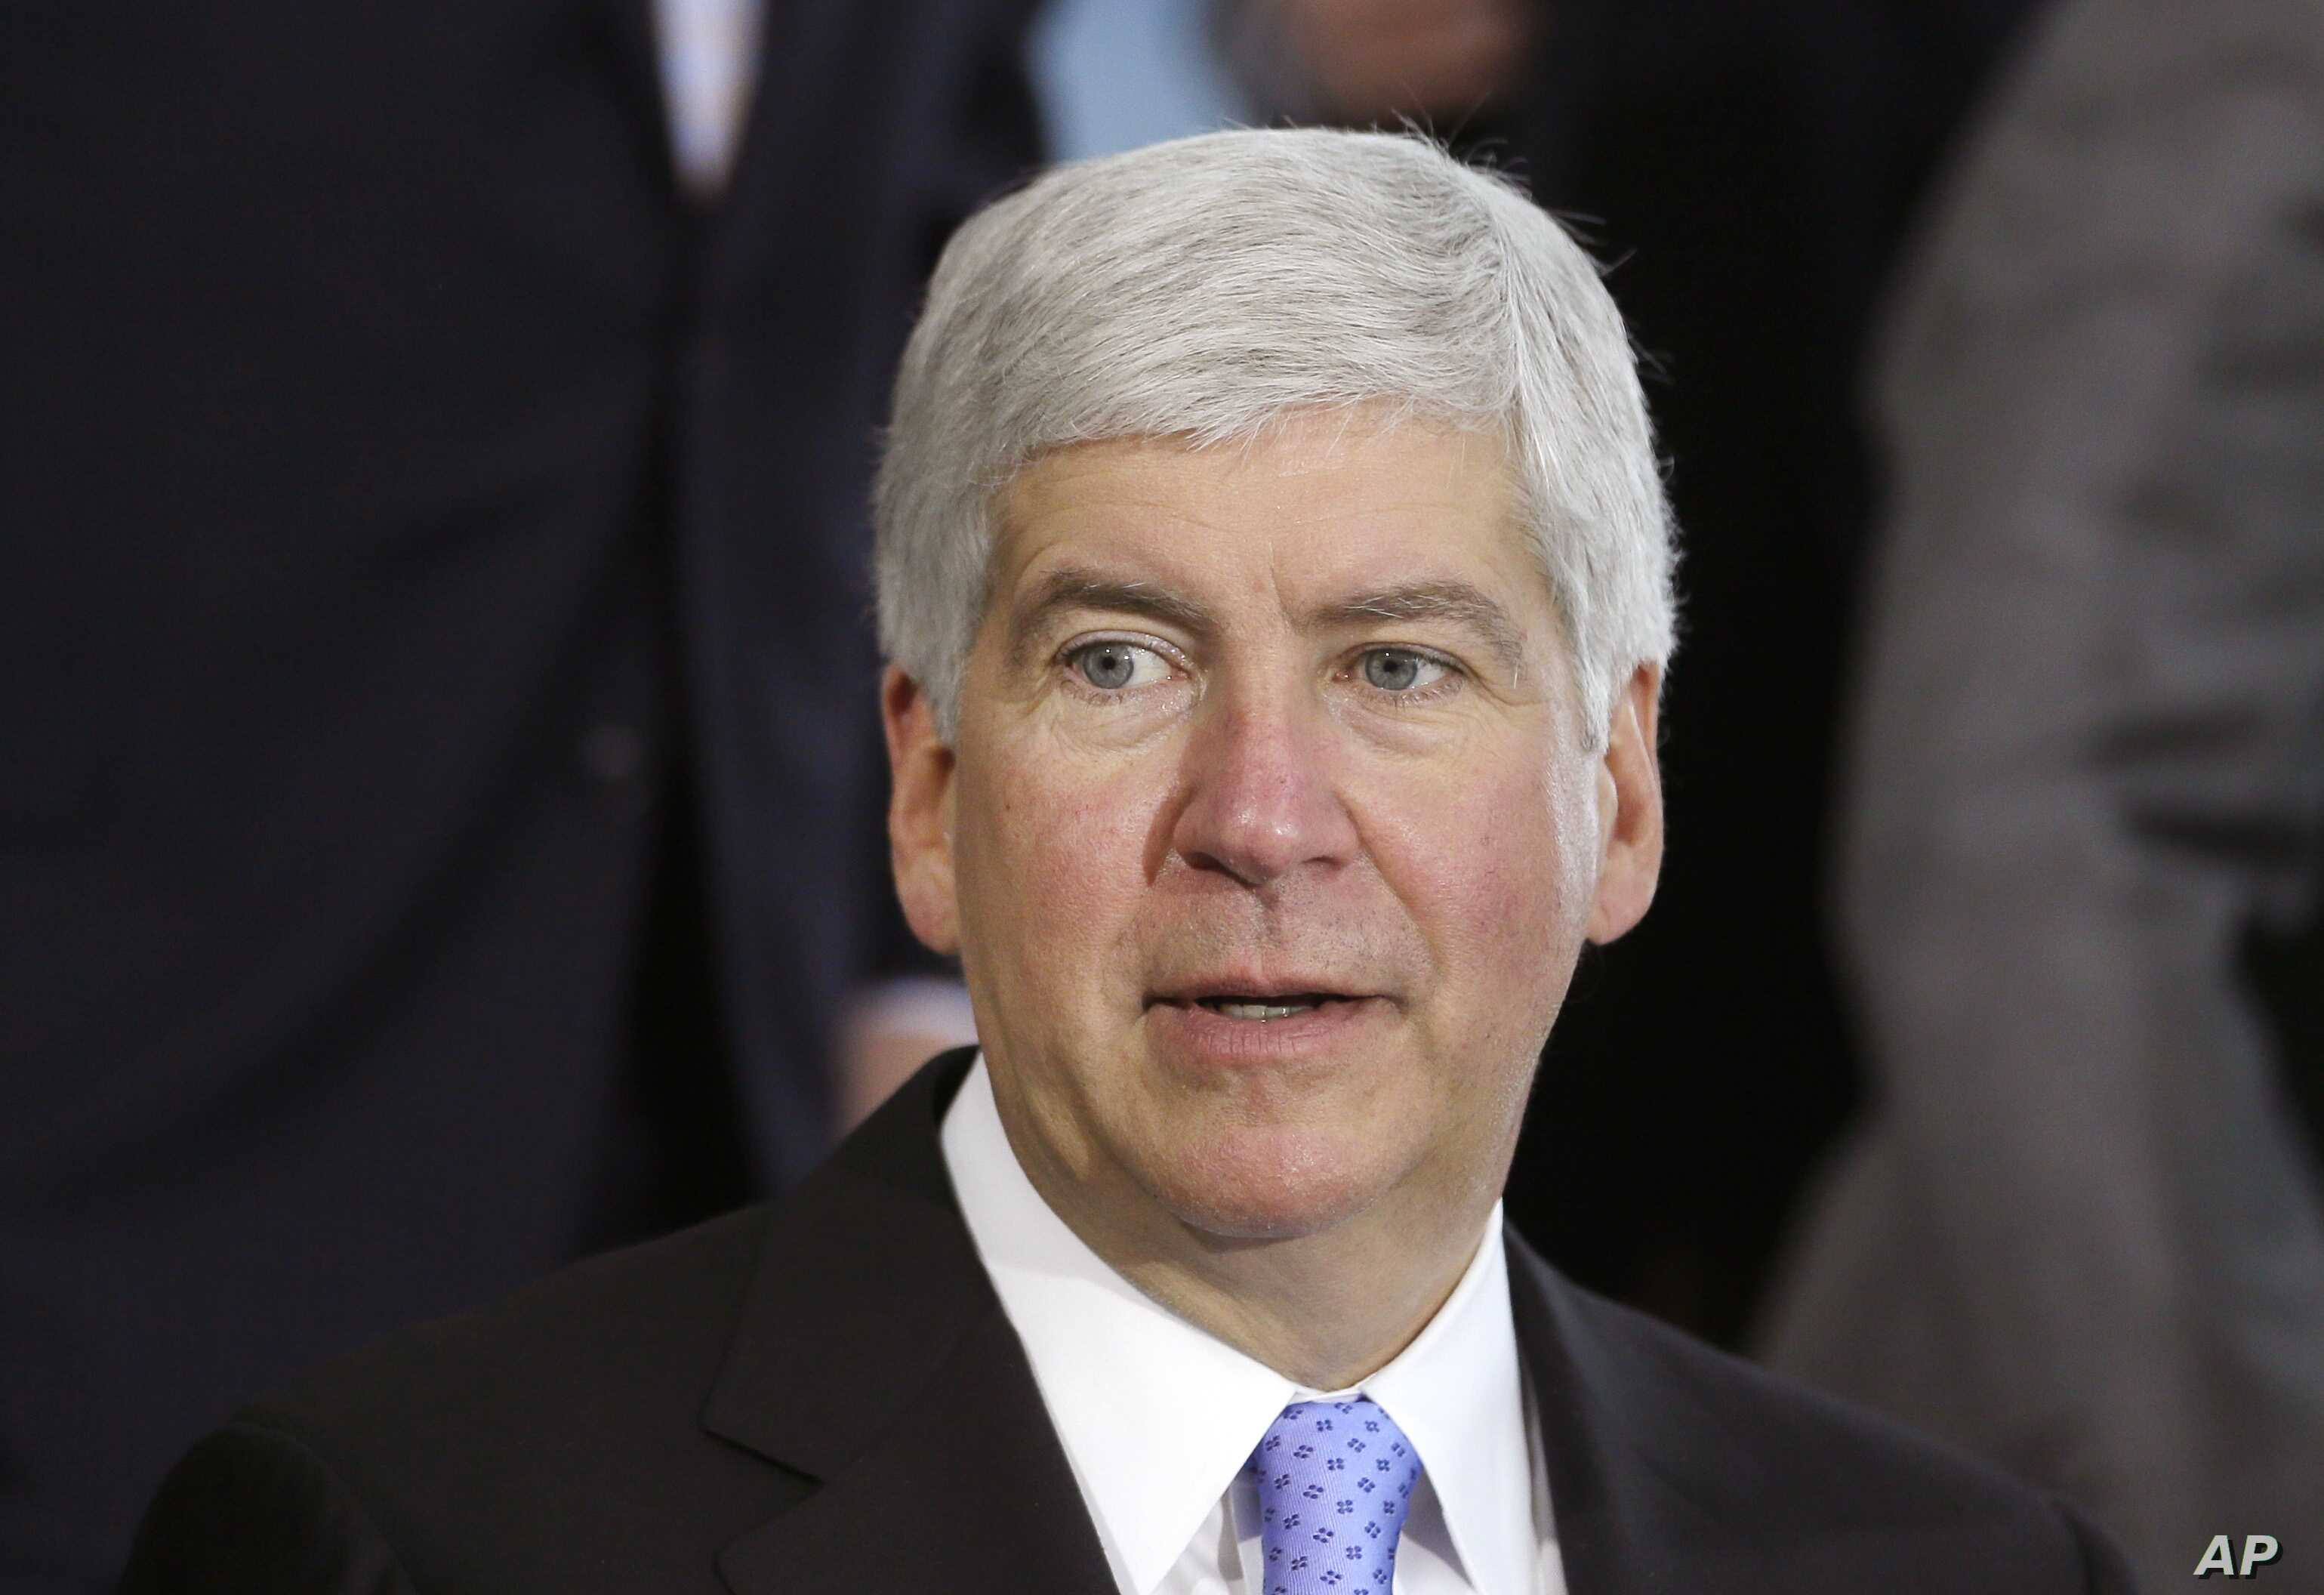 FILE - Michigan Gov. Rick Snyder speaks in Detroit. Snyder is under fire, accused of reacting too slowly to the water crisis in Flint.